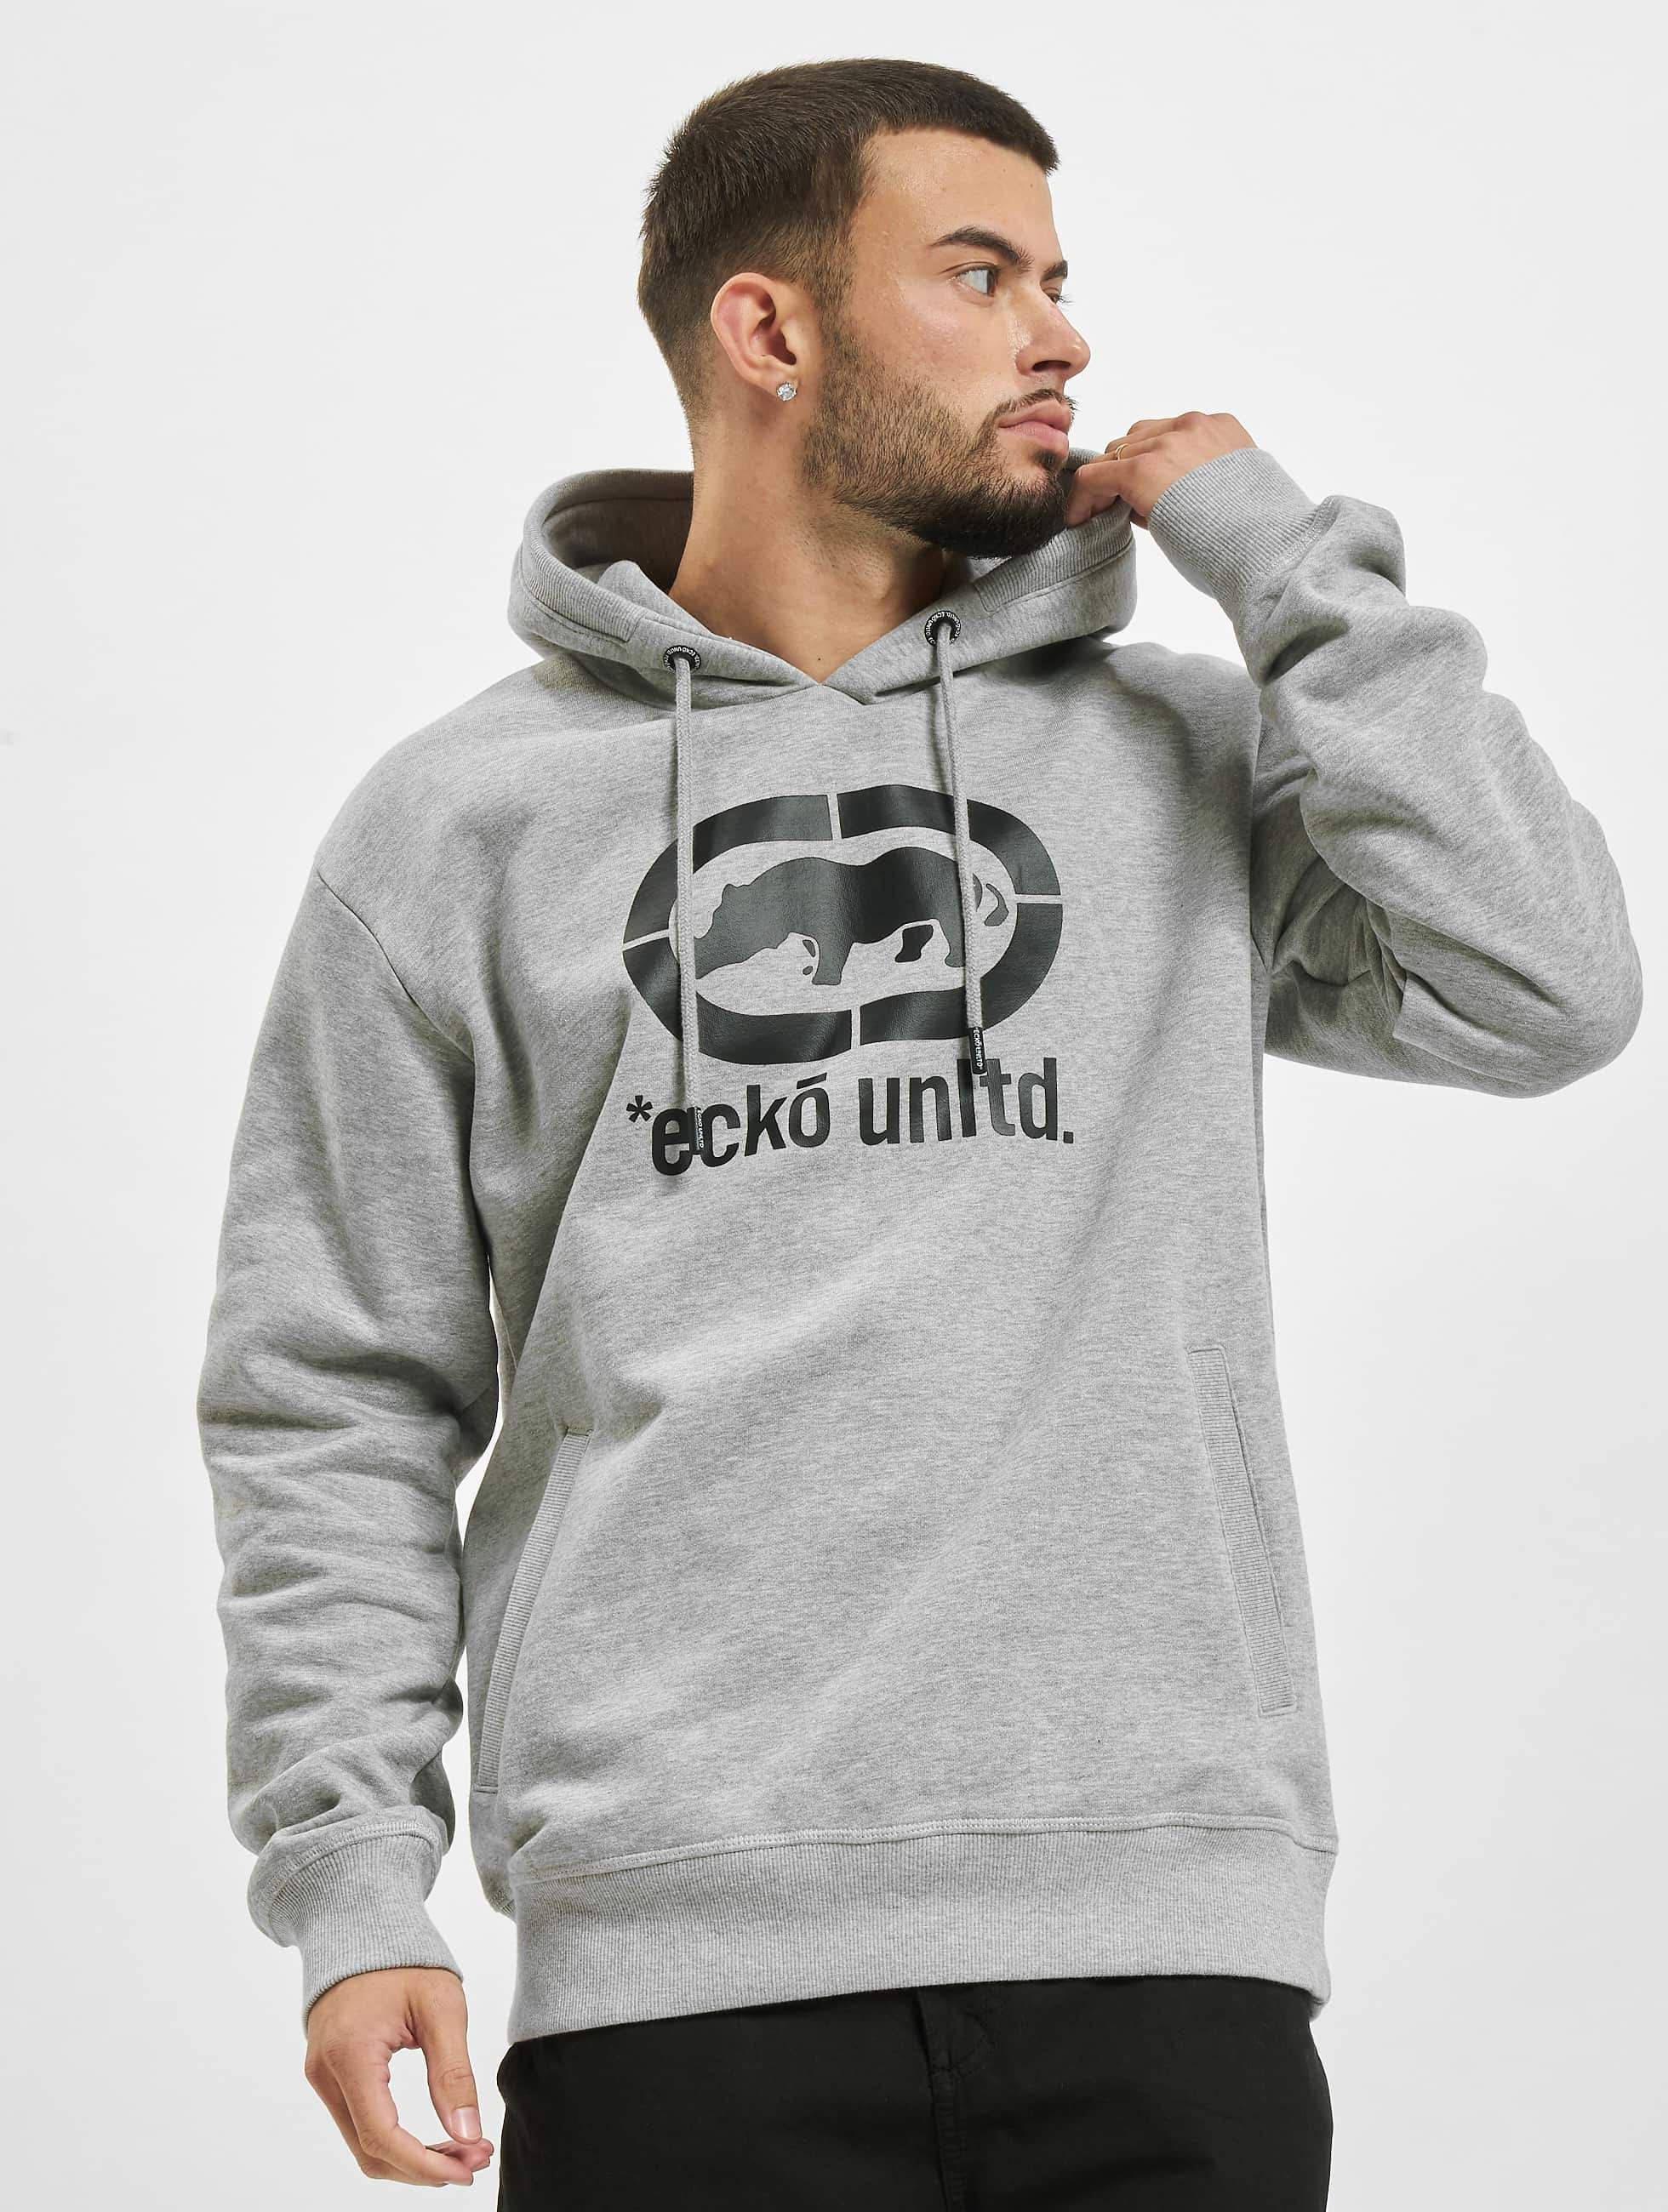 Ecko Unltd. / Hoodie Base in grey S